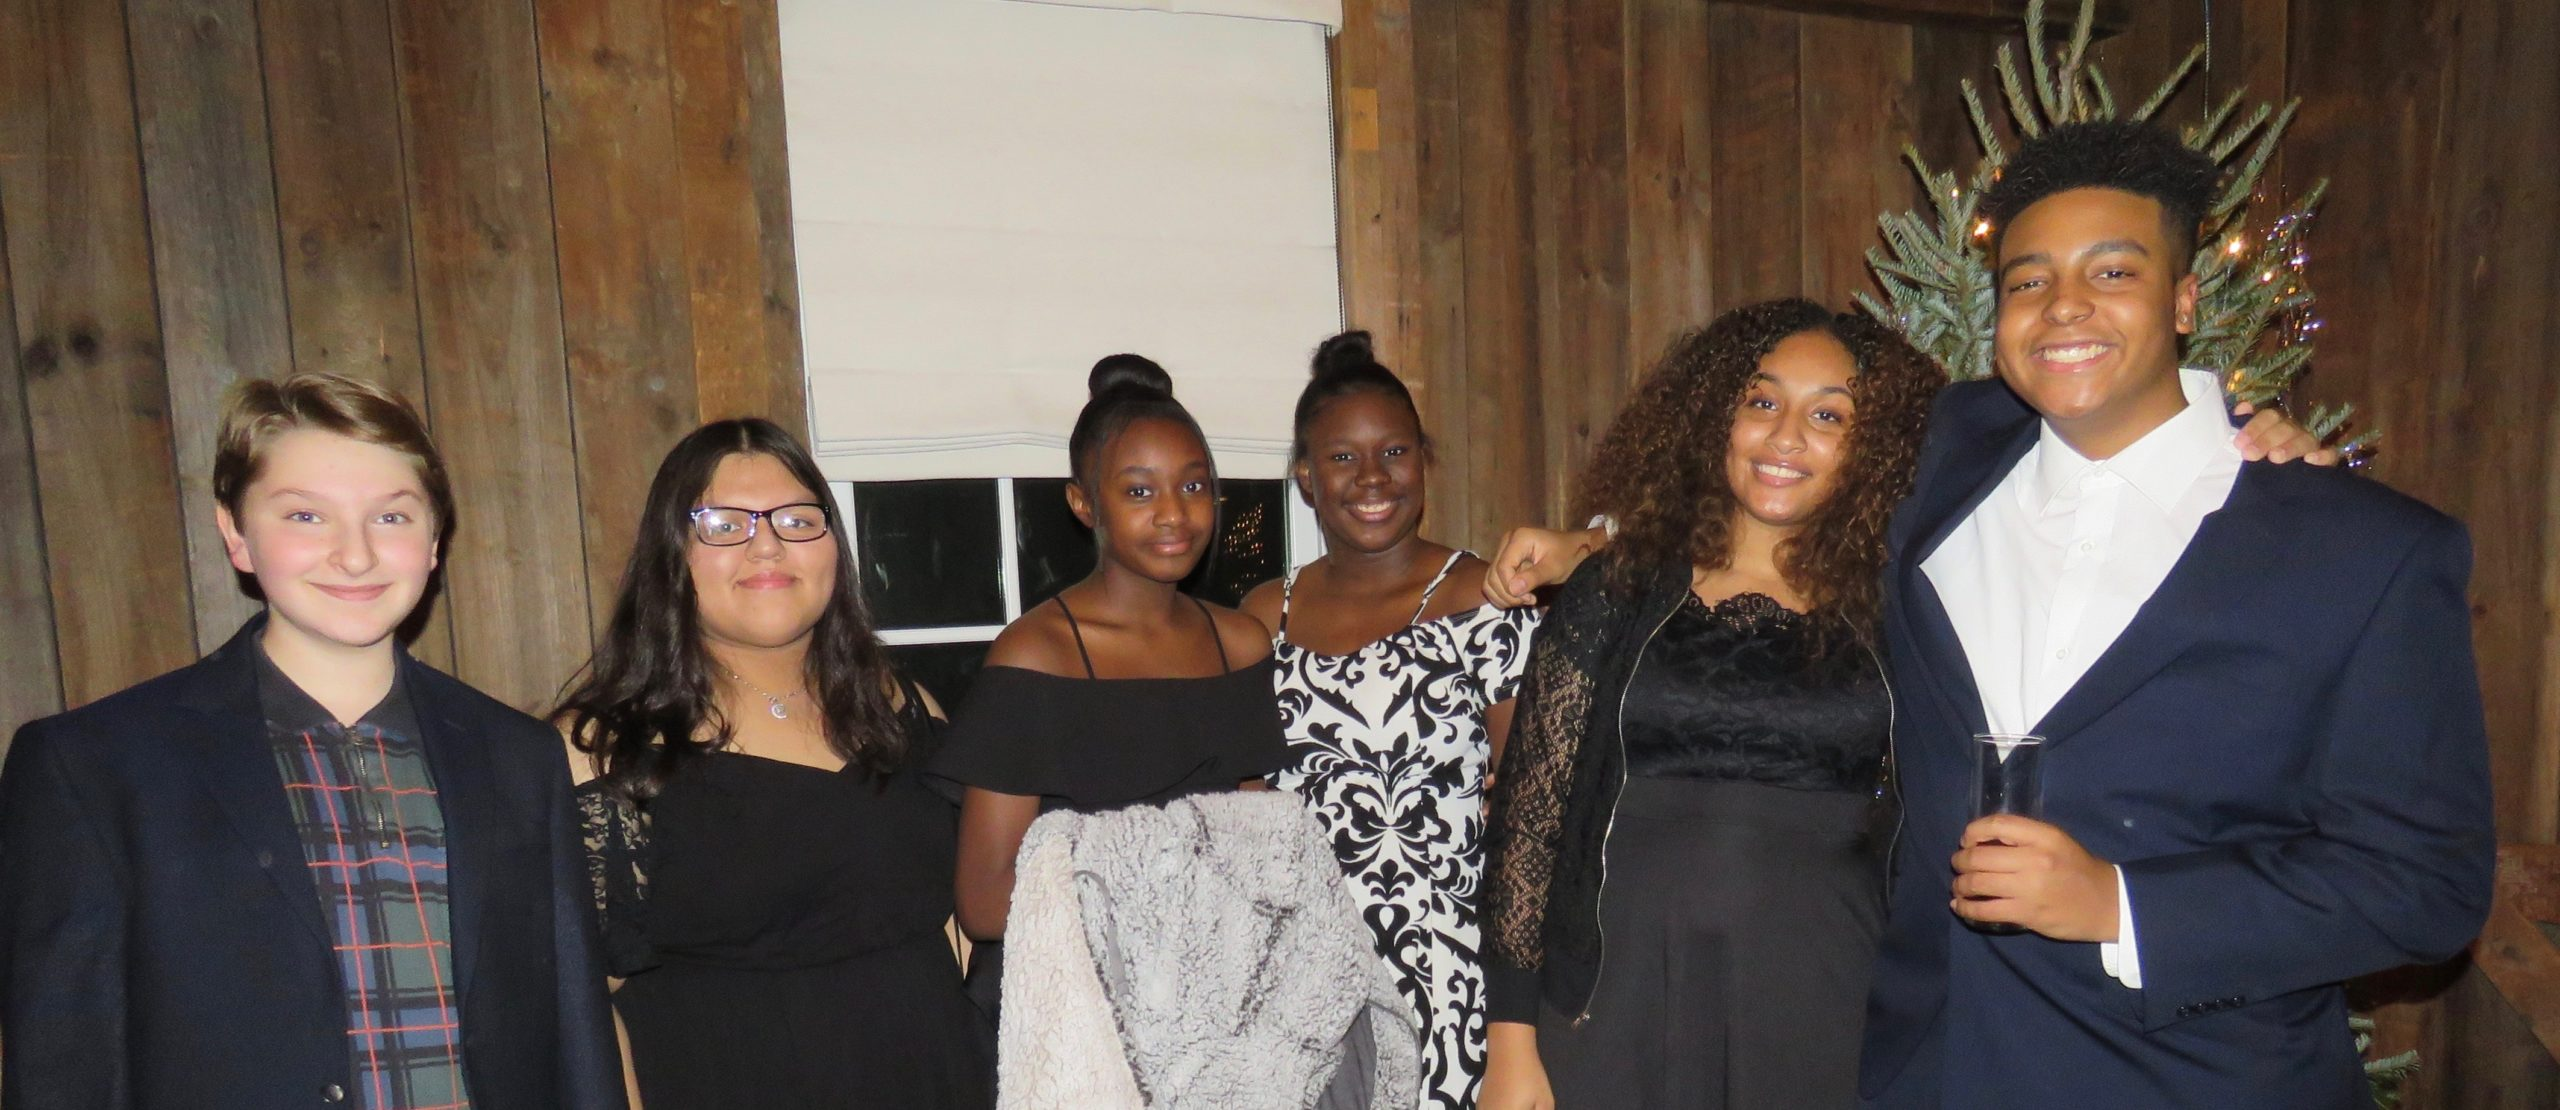 The Bridgehampton Childcare and Recreational Center held its annual holiday fundraising dinner at the Topping Rose House in Bridgehampton on December 15.  Among those attending were Sivia Loria and Bonnie Michelle Cannon, right, and a group of supportive teens.